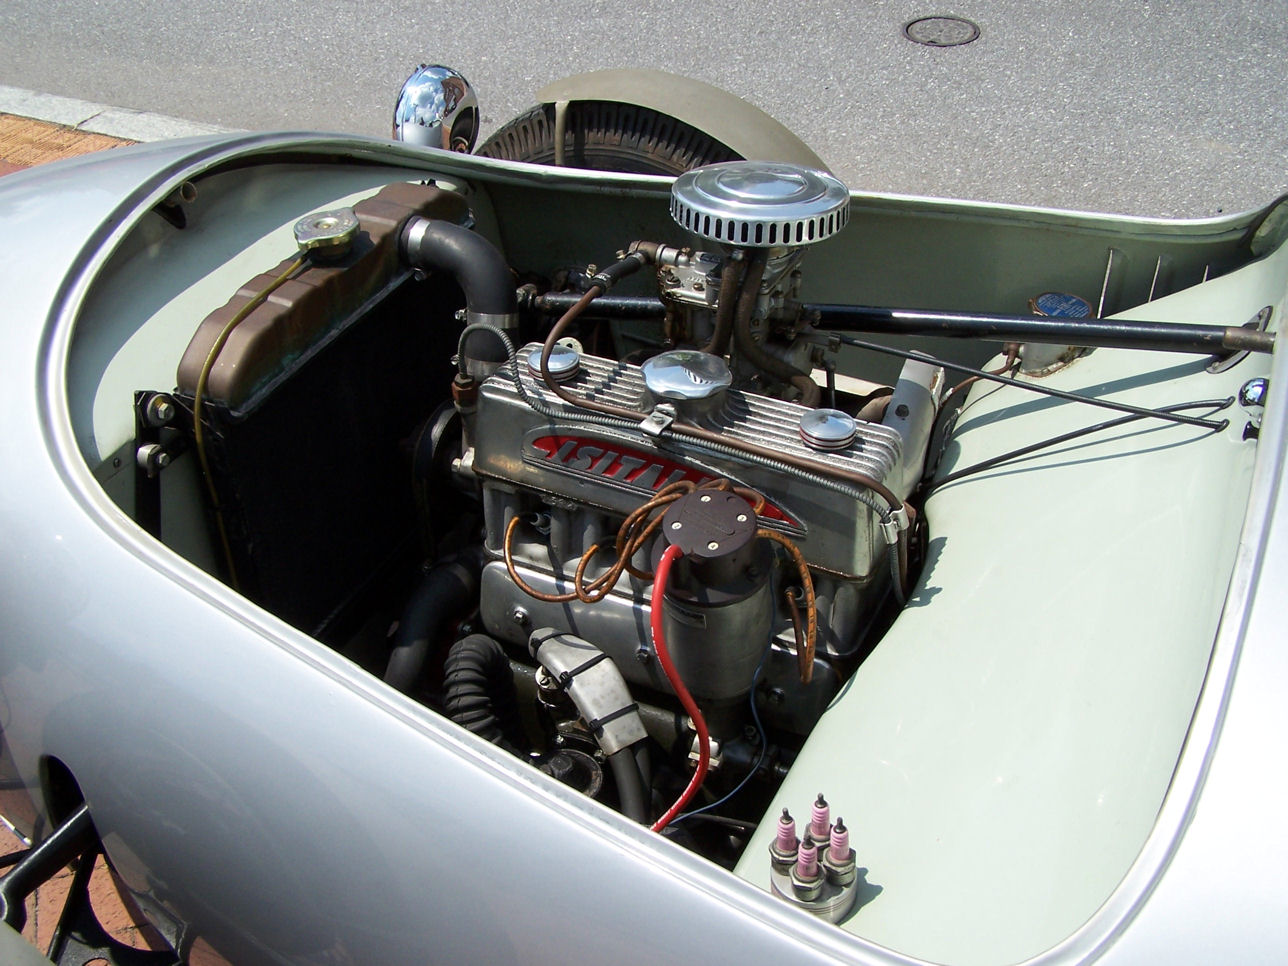 The Fiat 1100 has powered so